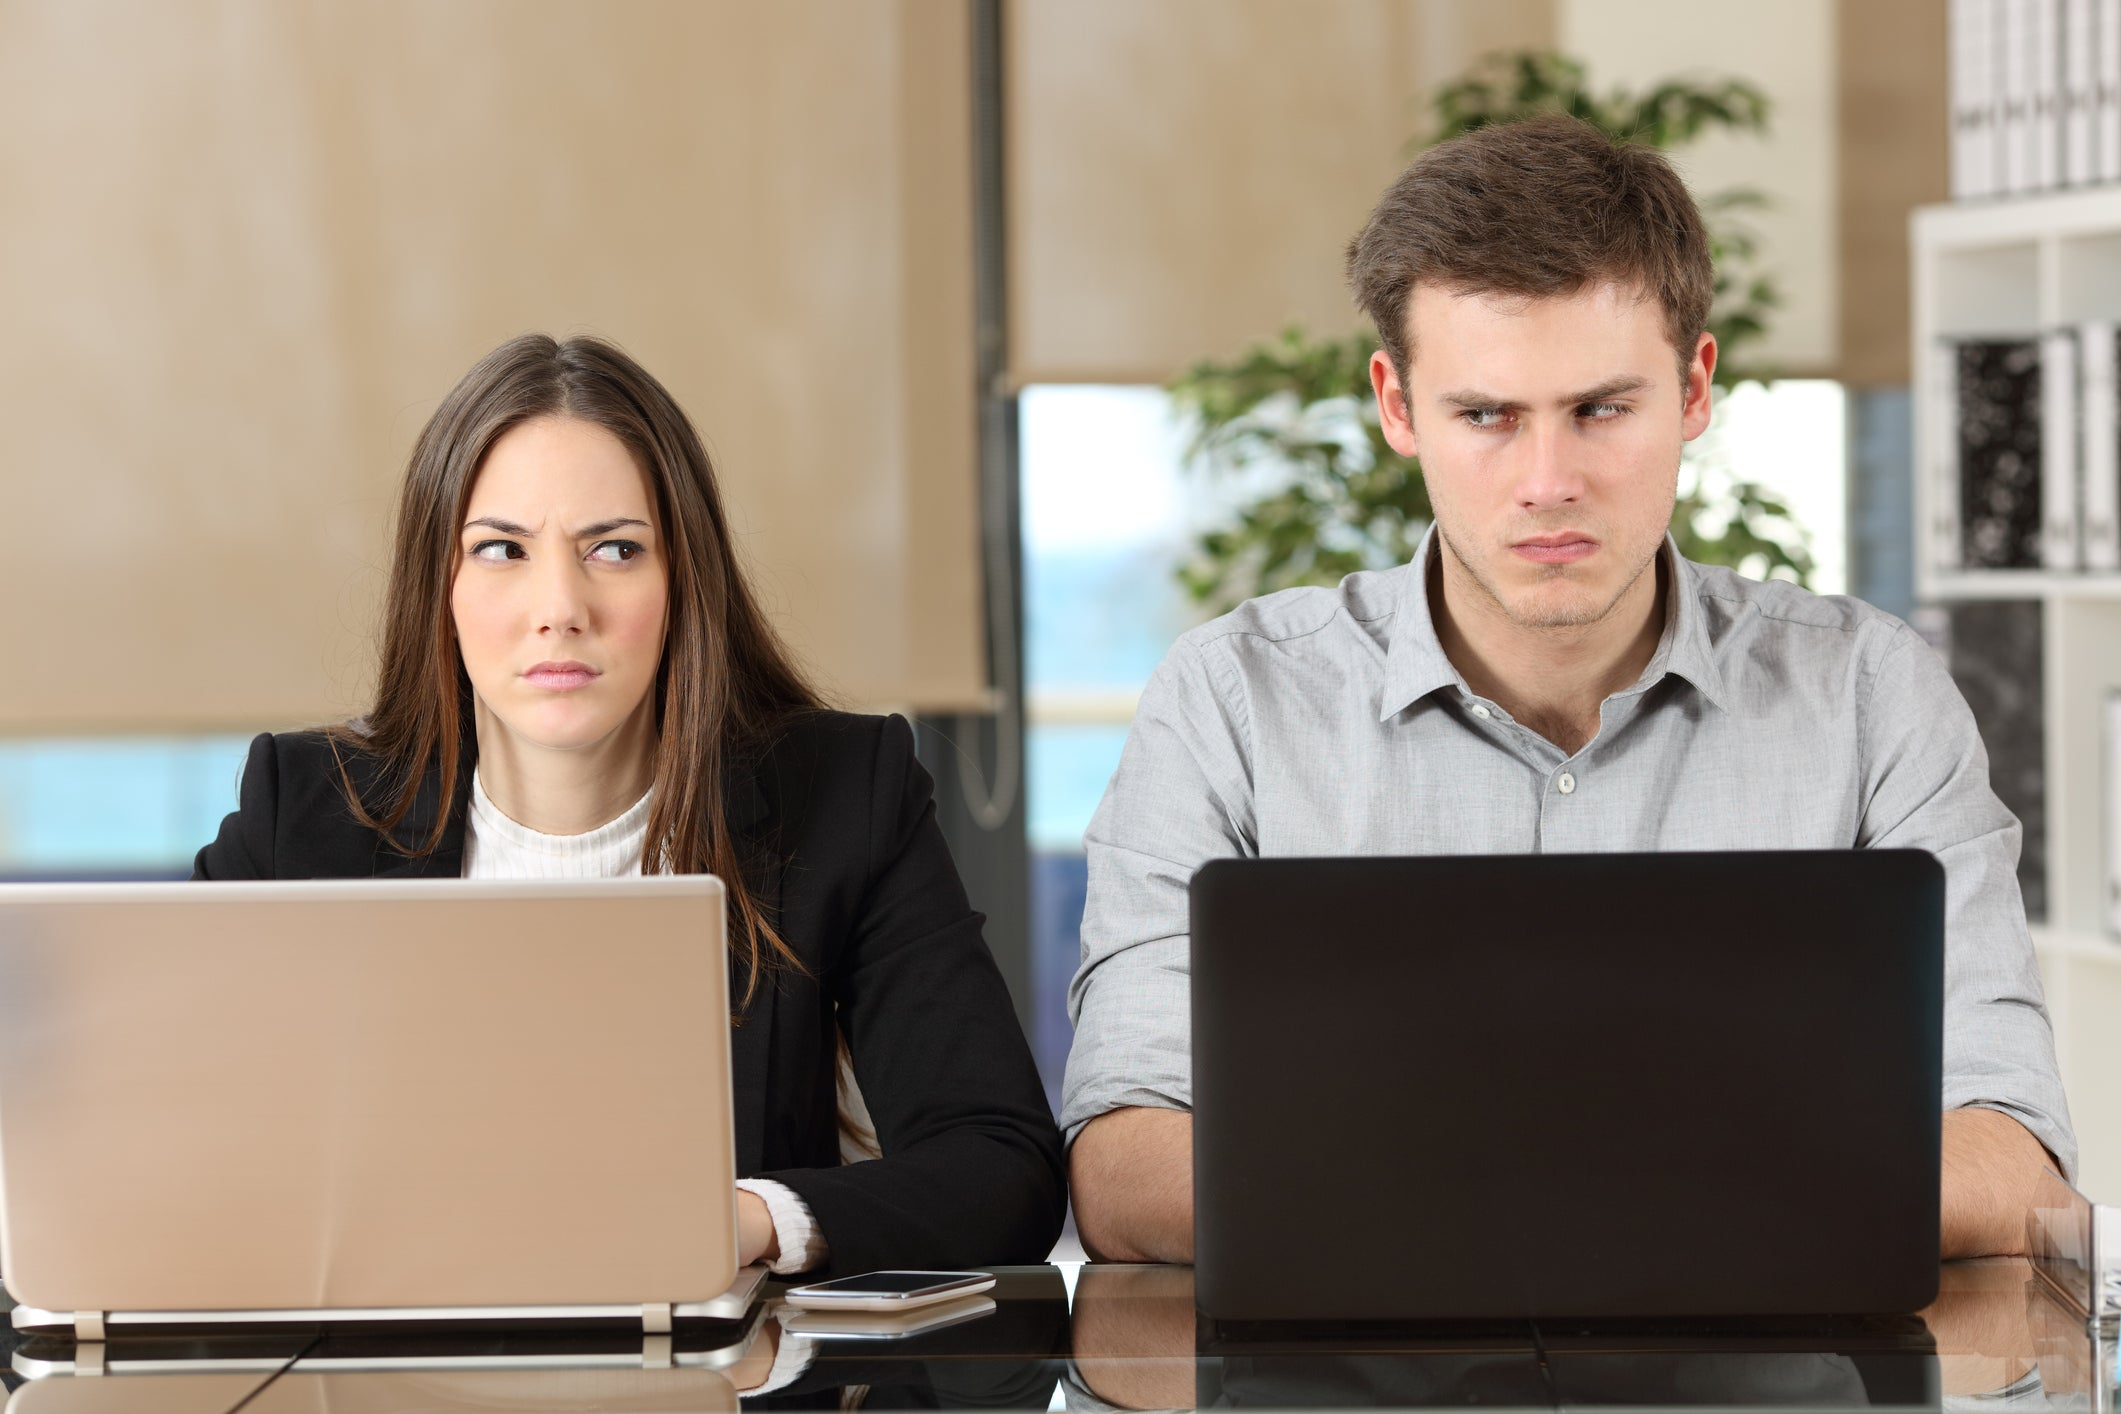 How to Cope With an Overbearing Coworker   The Motley Fool